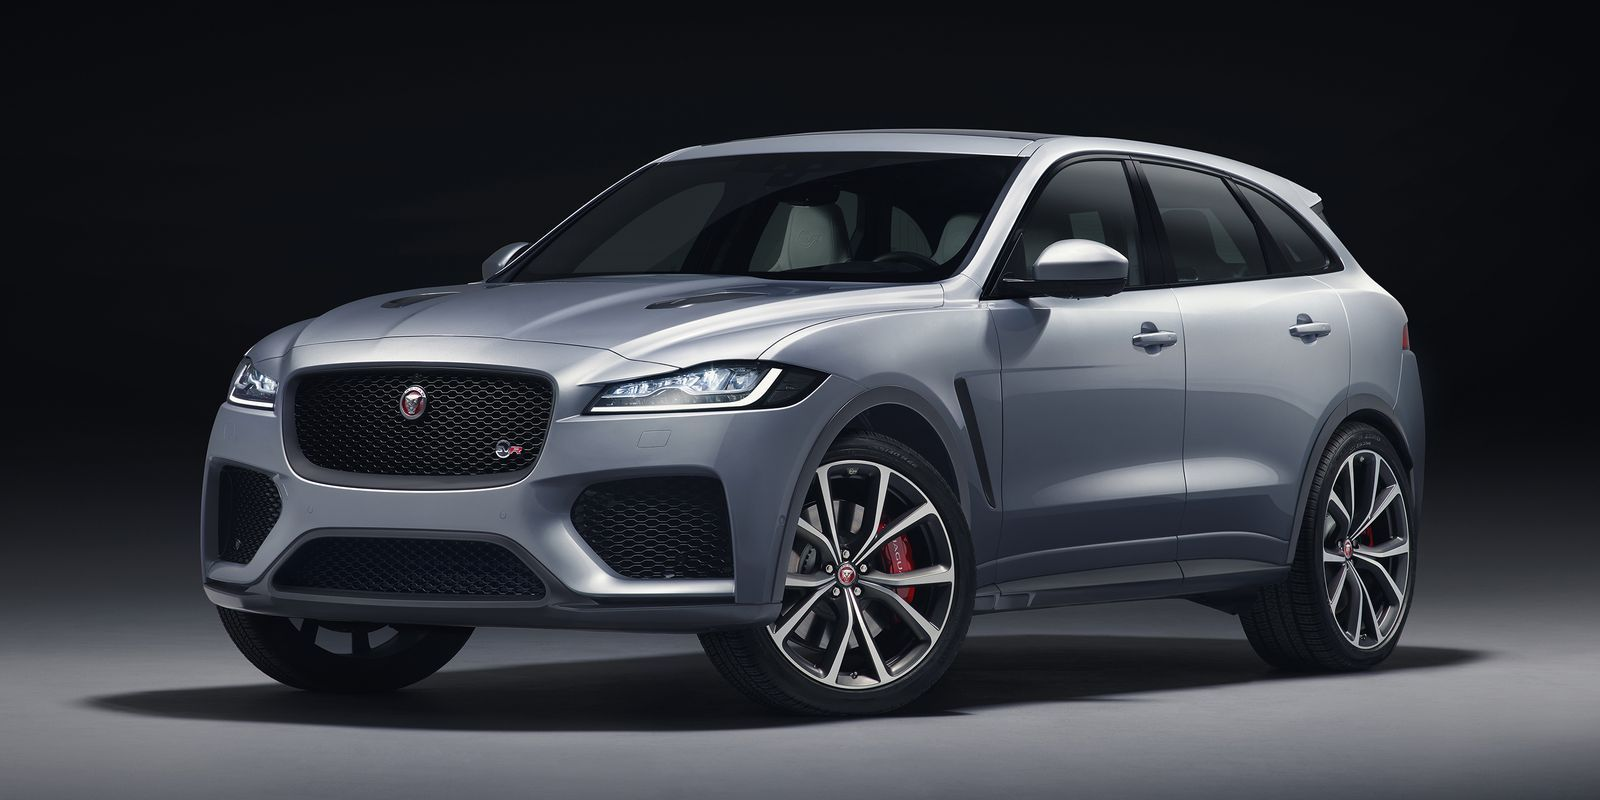 The 2019 Jaguar F Pace Svr Is 550 Hp Of Supercharged English Absurdity Coches Jaguar Vehículo De Lujo Coches Familiares